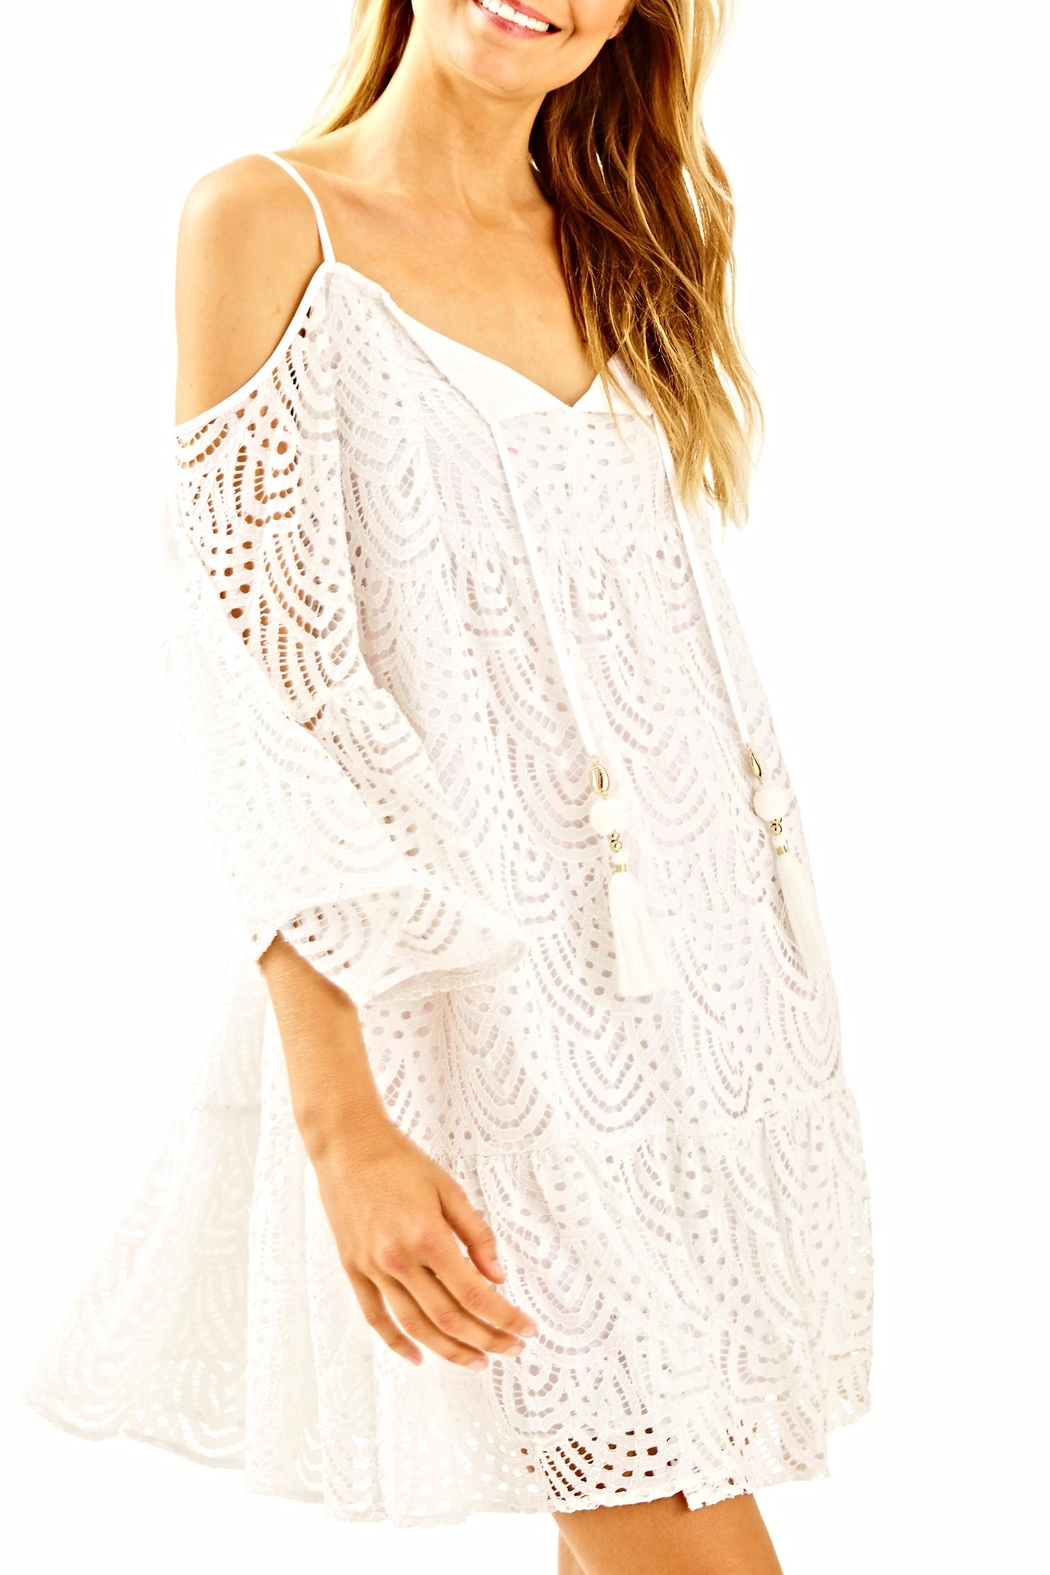 Lilly Pulitzer Alanna White Dress from Sandestin Golf and ...